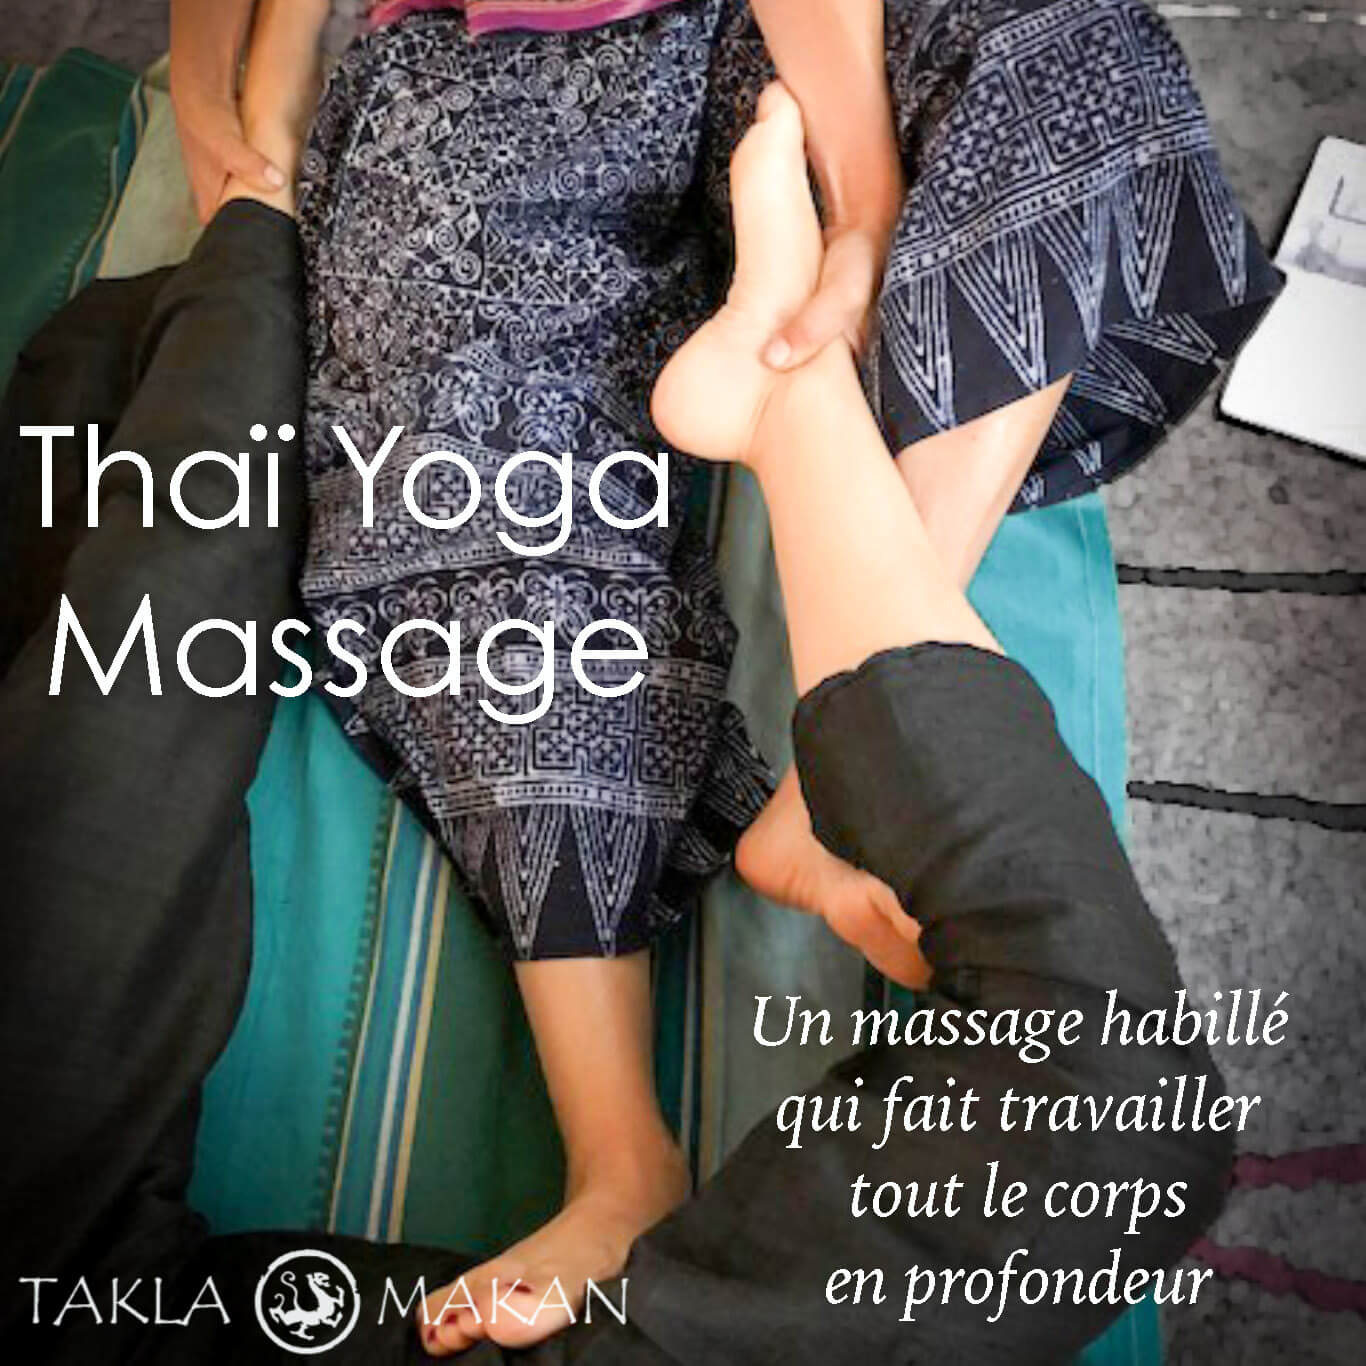 Melissa de Valera massage thai yoga